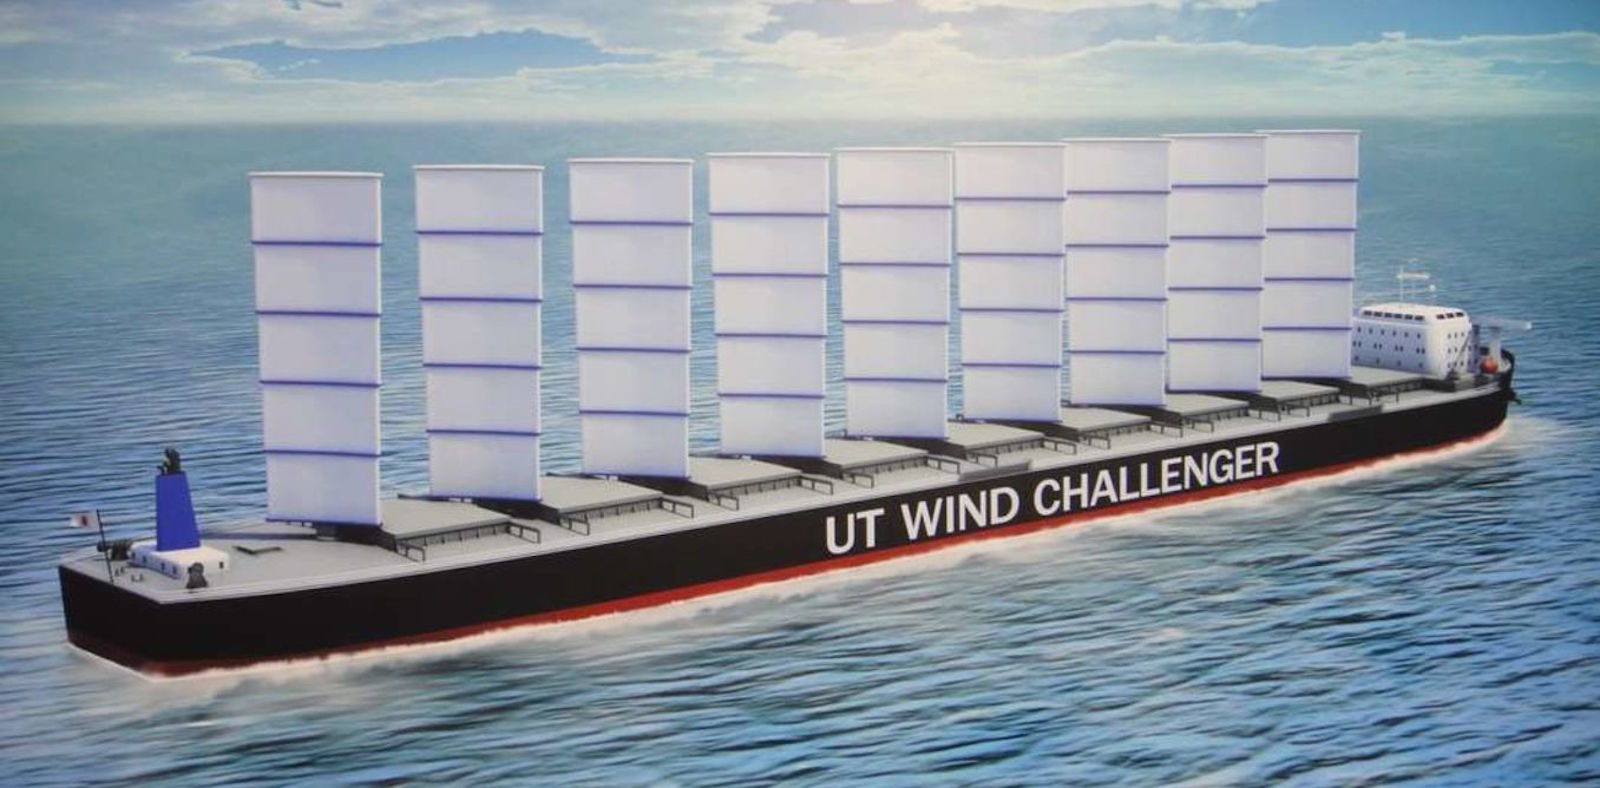 A new cargo ship in development at the University of Tokyo.